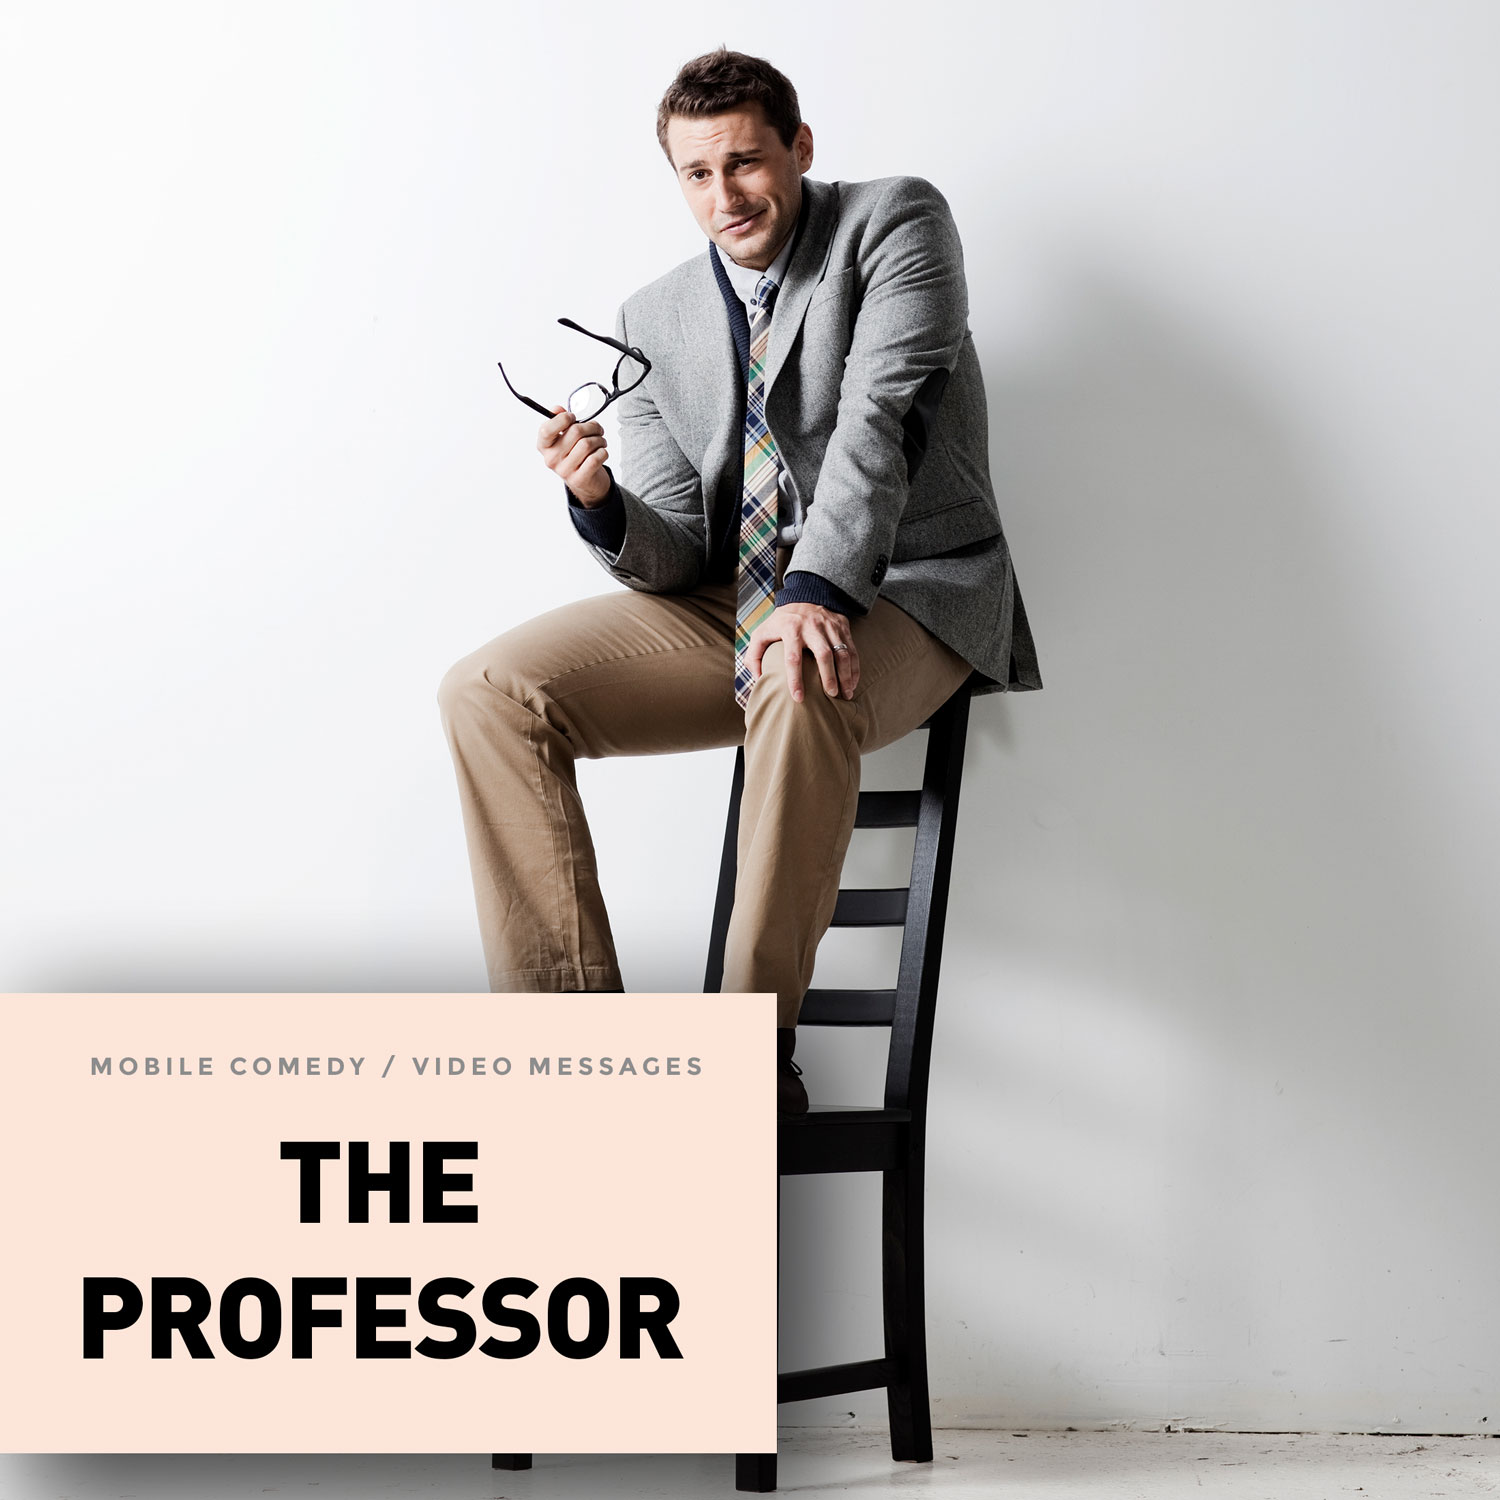 Start sending college professor vNotes to friends today with Professor Hayes from the HEY! Video eCard Professor collection. He is an erudite college professor in his 30s who talks with the calmness and seriousness of a tenured, veteran educator. He wears a tweed jacket.